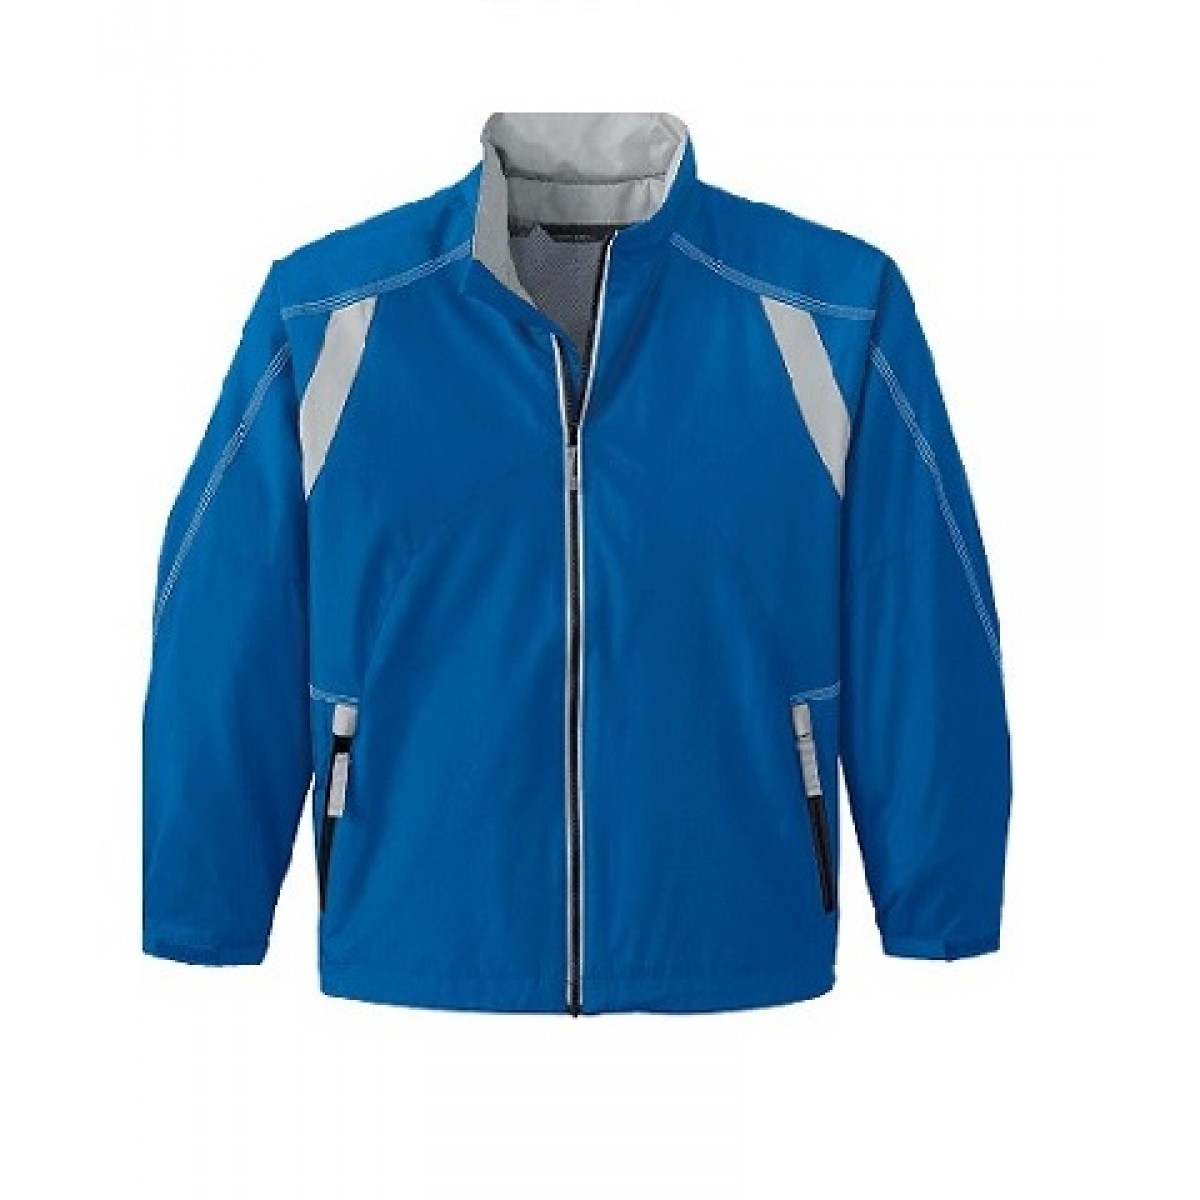 Embroidered Youth Lightweight Color-Block Jacket-Blue-YM